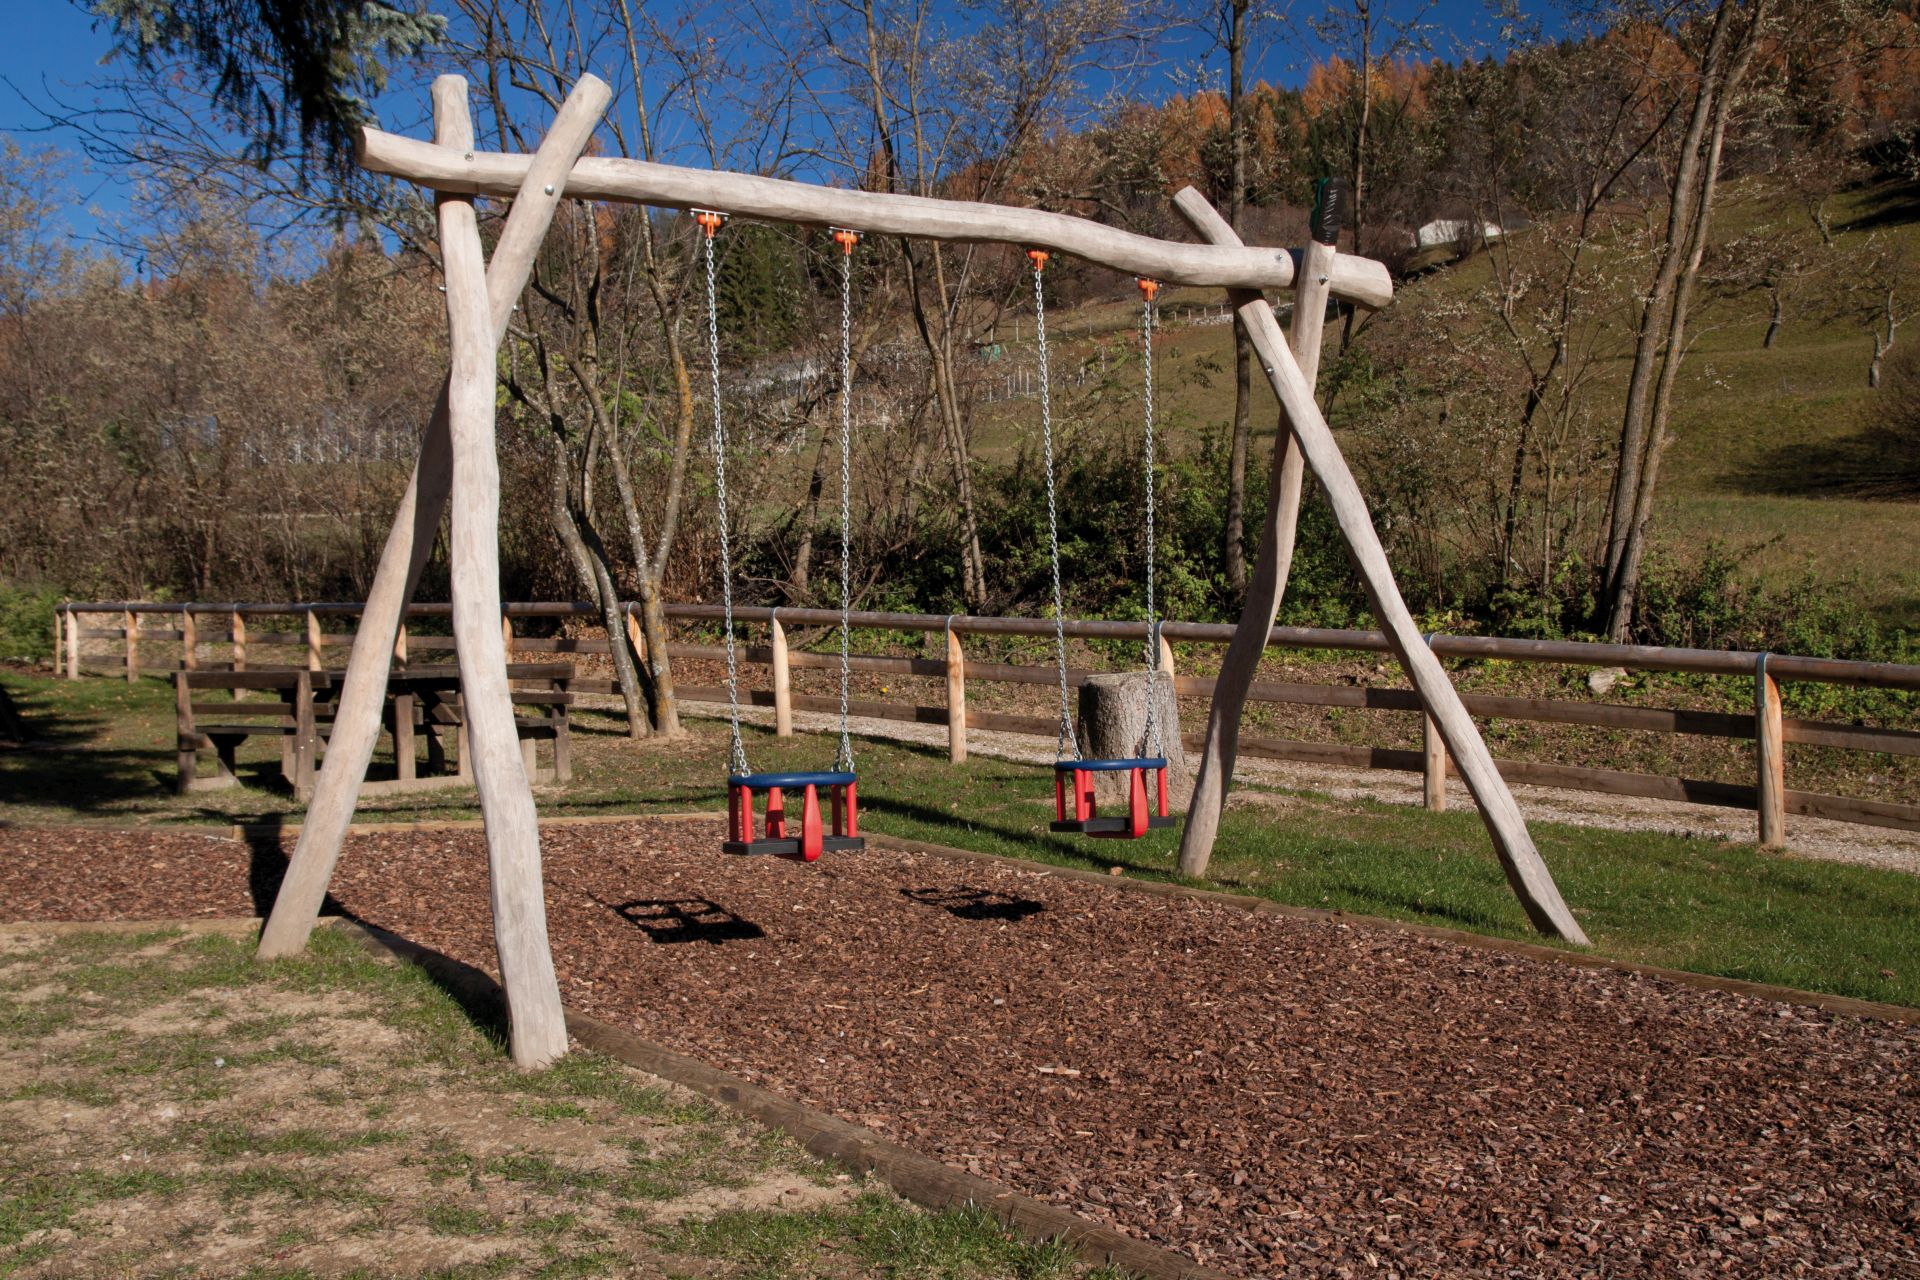 Holzhof COUNTRY (FACILITIES IN ROBINIA WOOD) Swing in robinia with 2 bucket seats, posts for surface